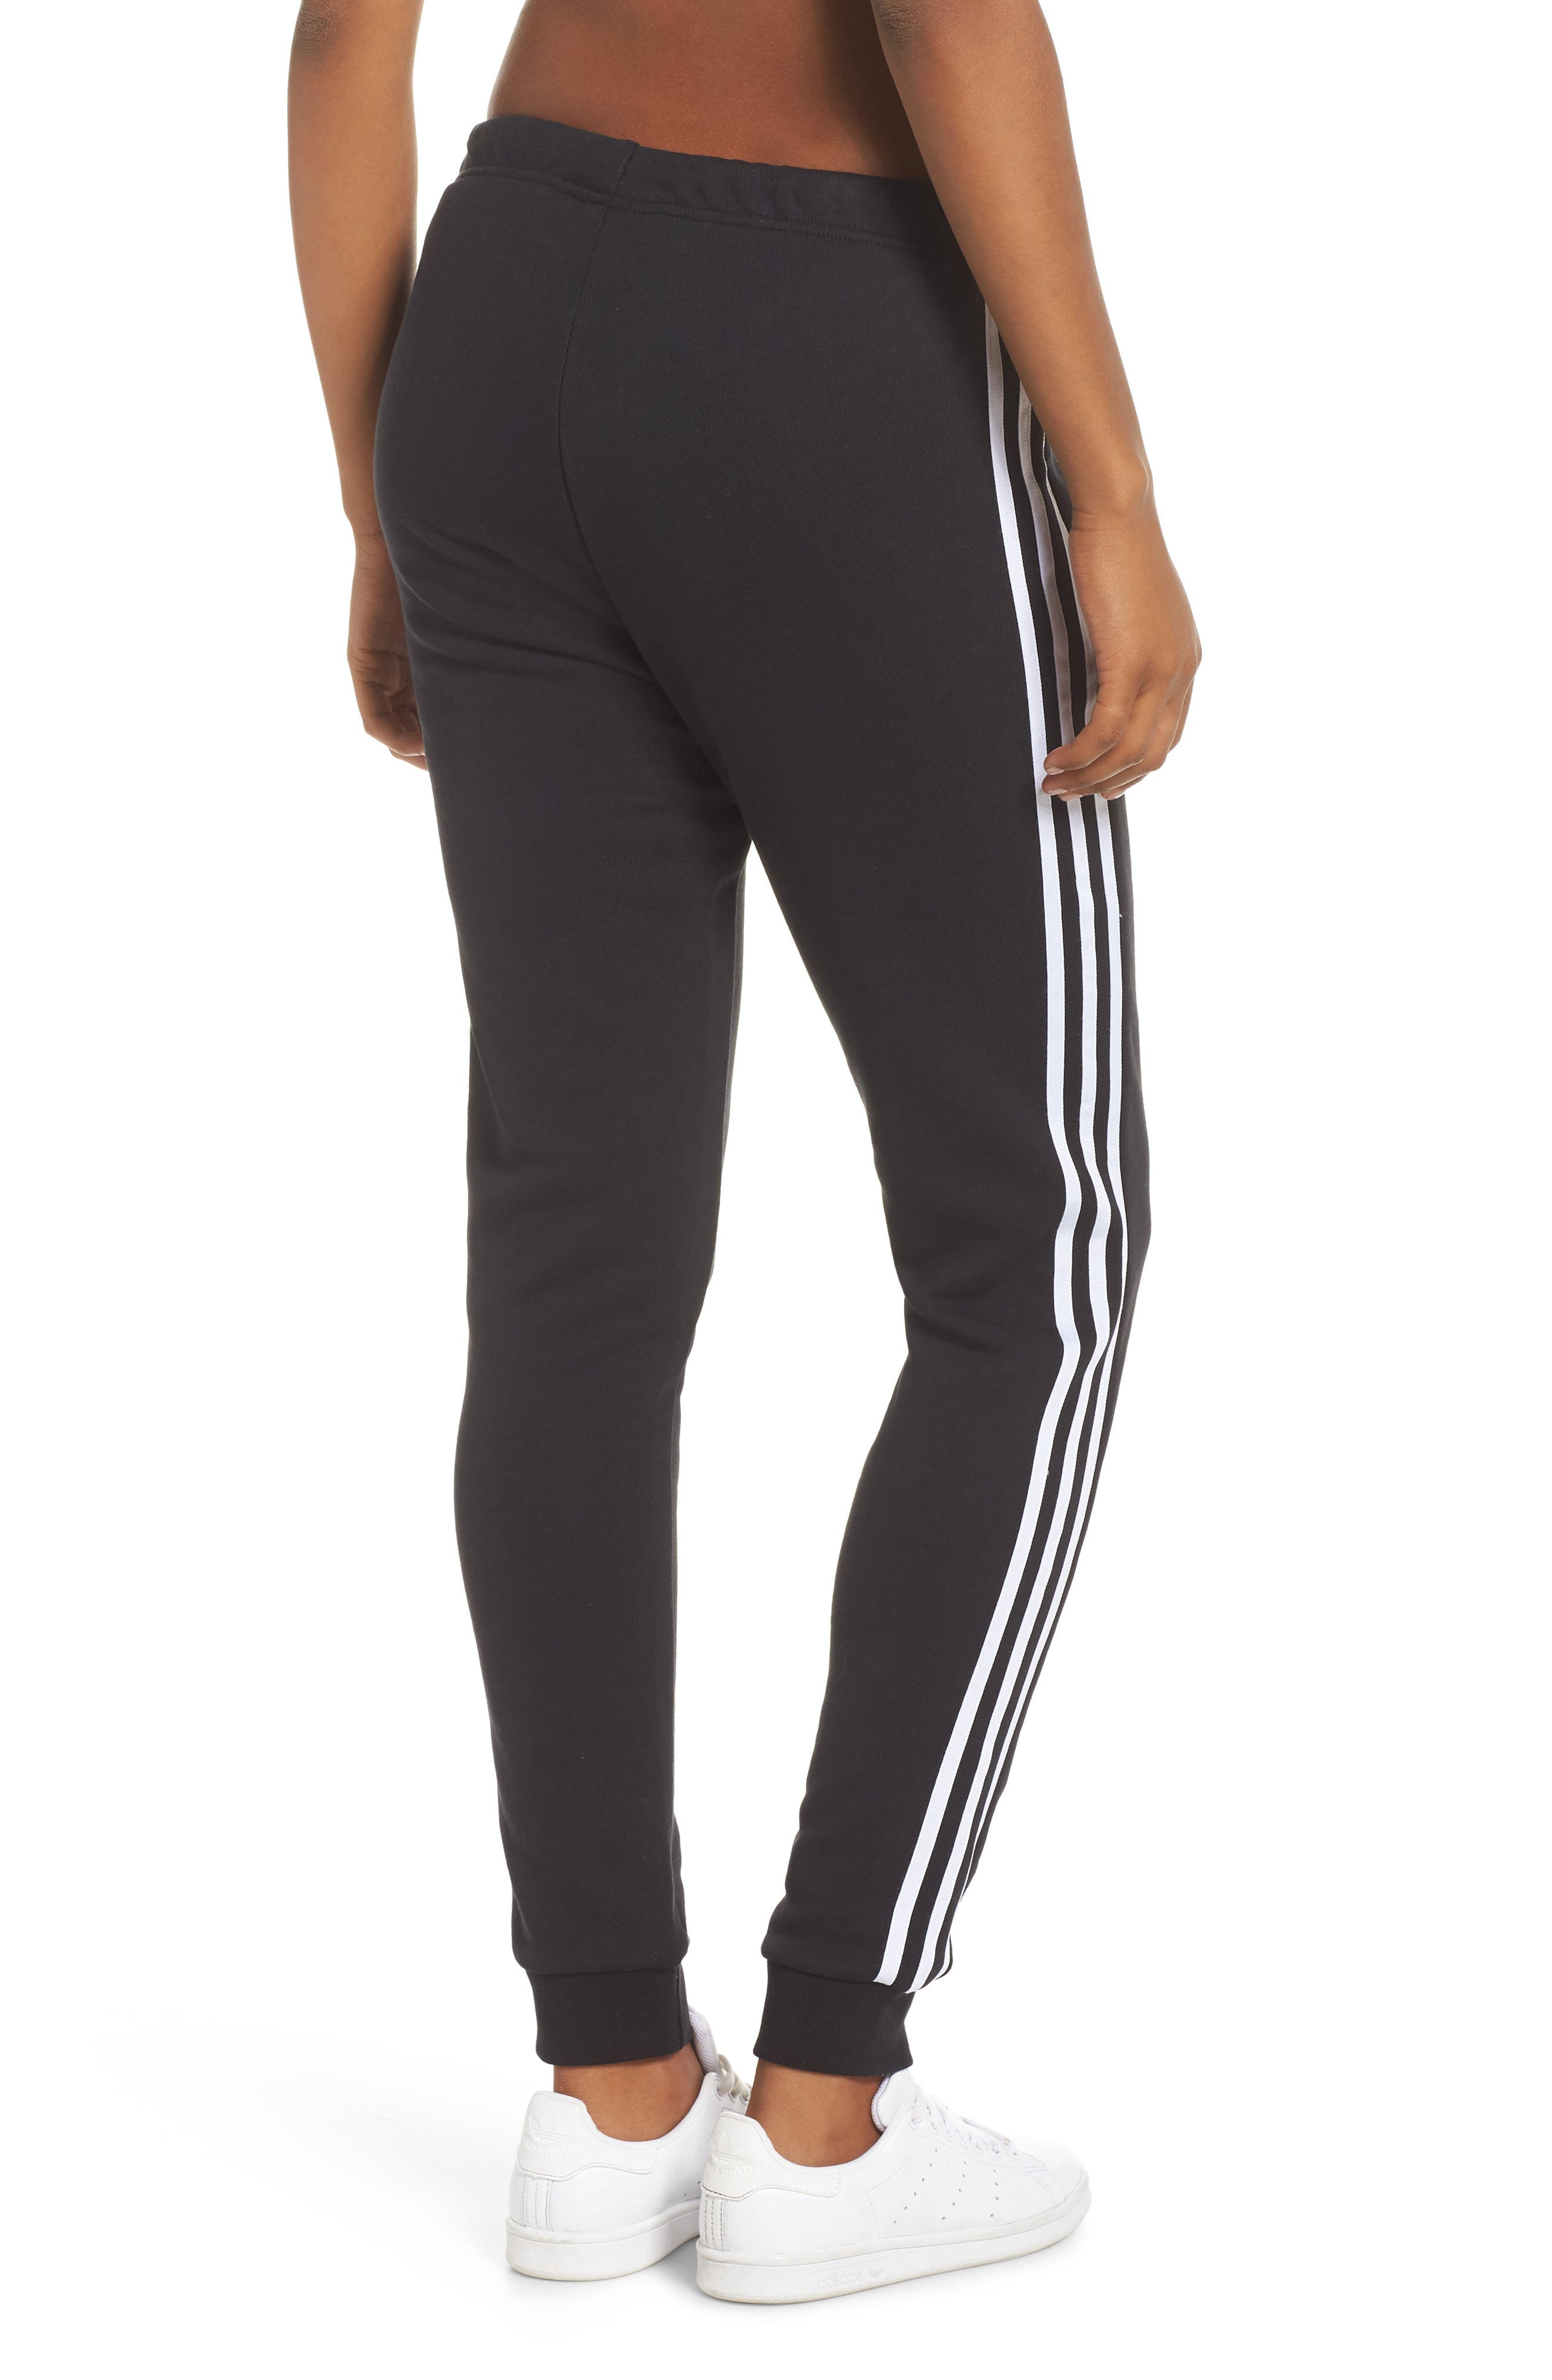 ADIDAS ORIGINALS, Cuffed Track Pants, Alternate thumbnail 2, color, BLACK